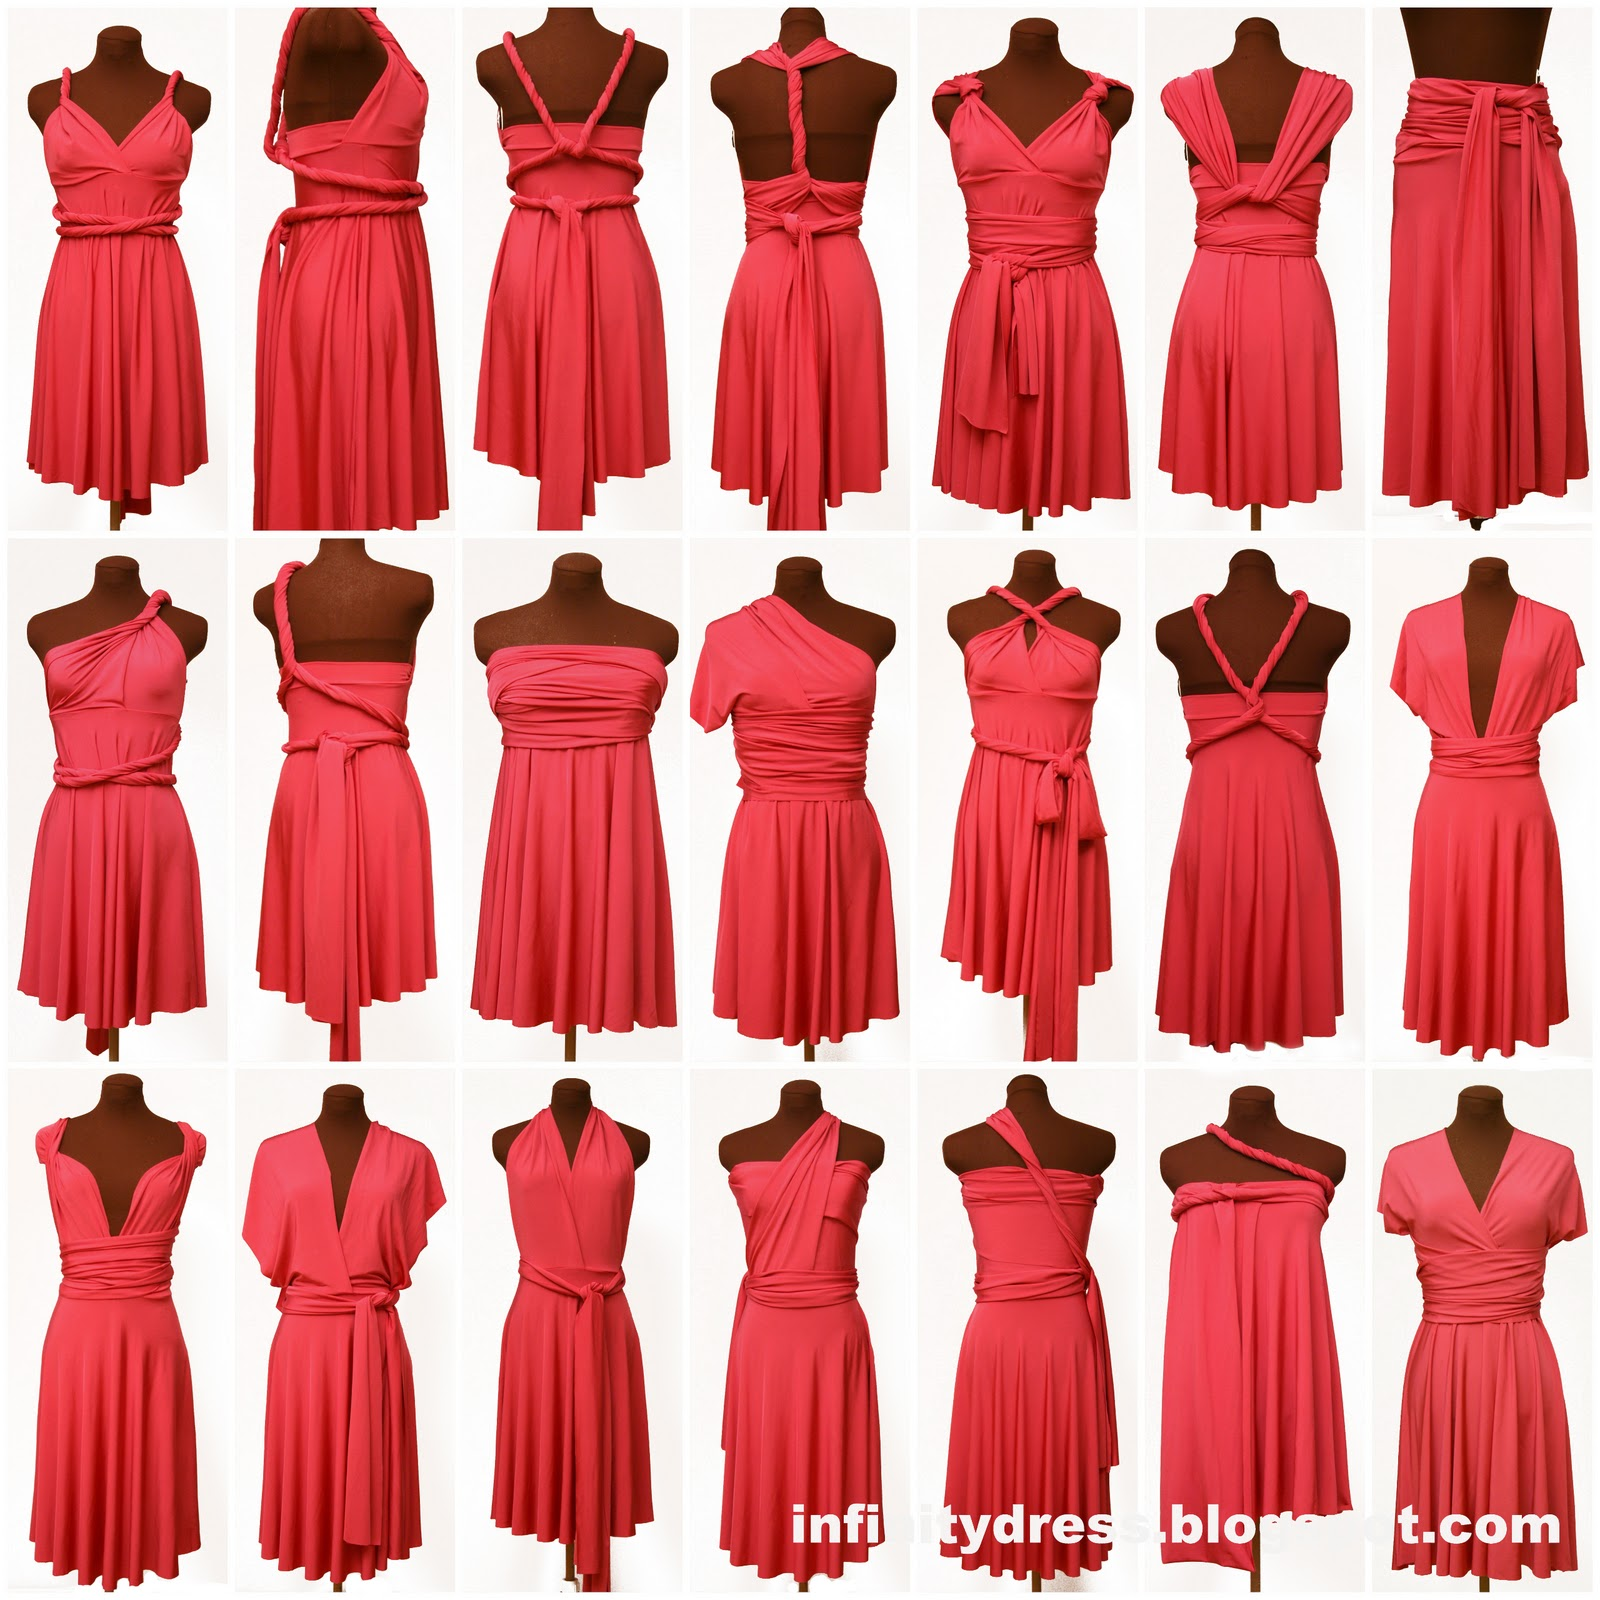 Bridesmaid dress you can wear 15 different ways wedding dresses bridesmaid dress you can wear 15 different ways 66 ombrellifo Choice Image